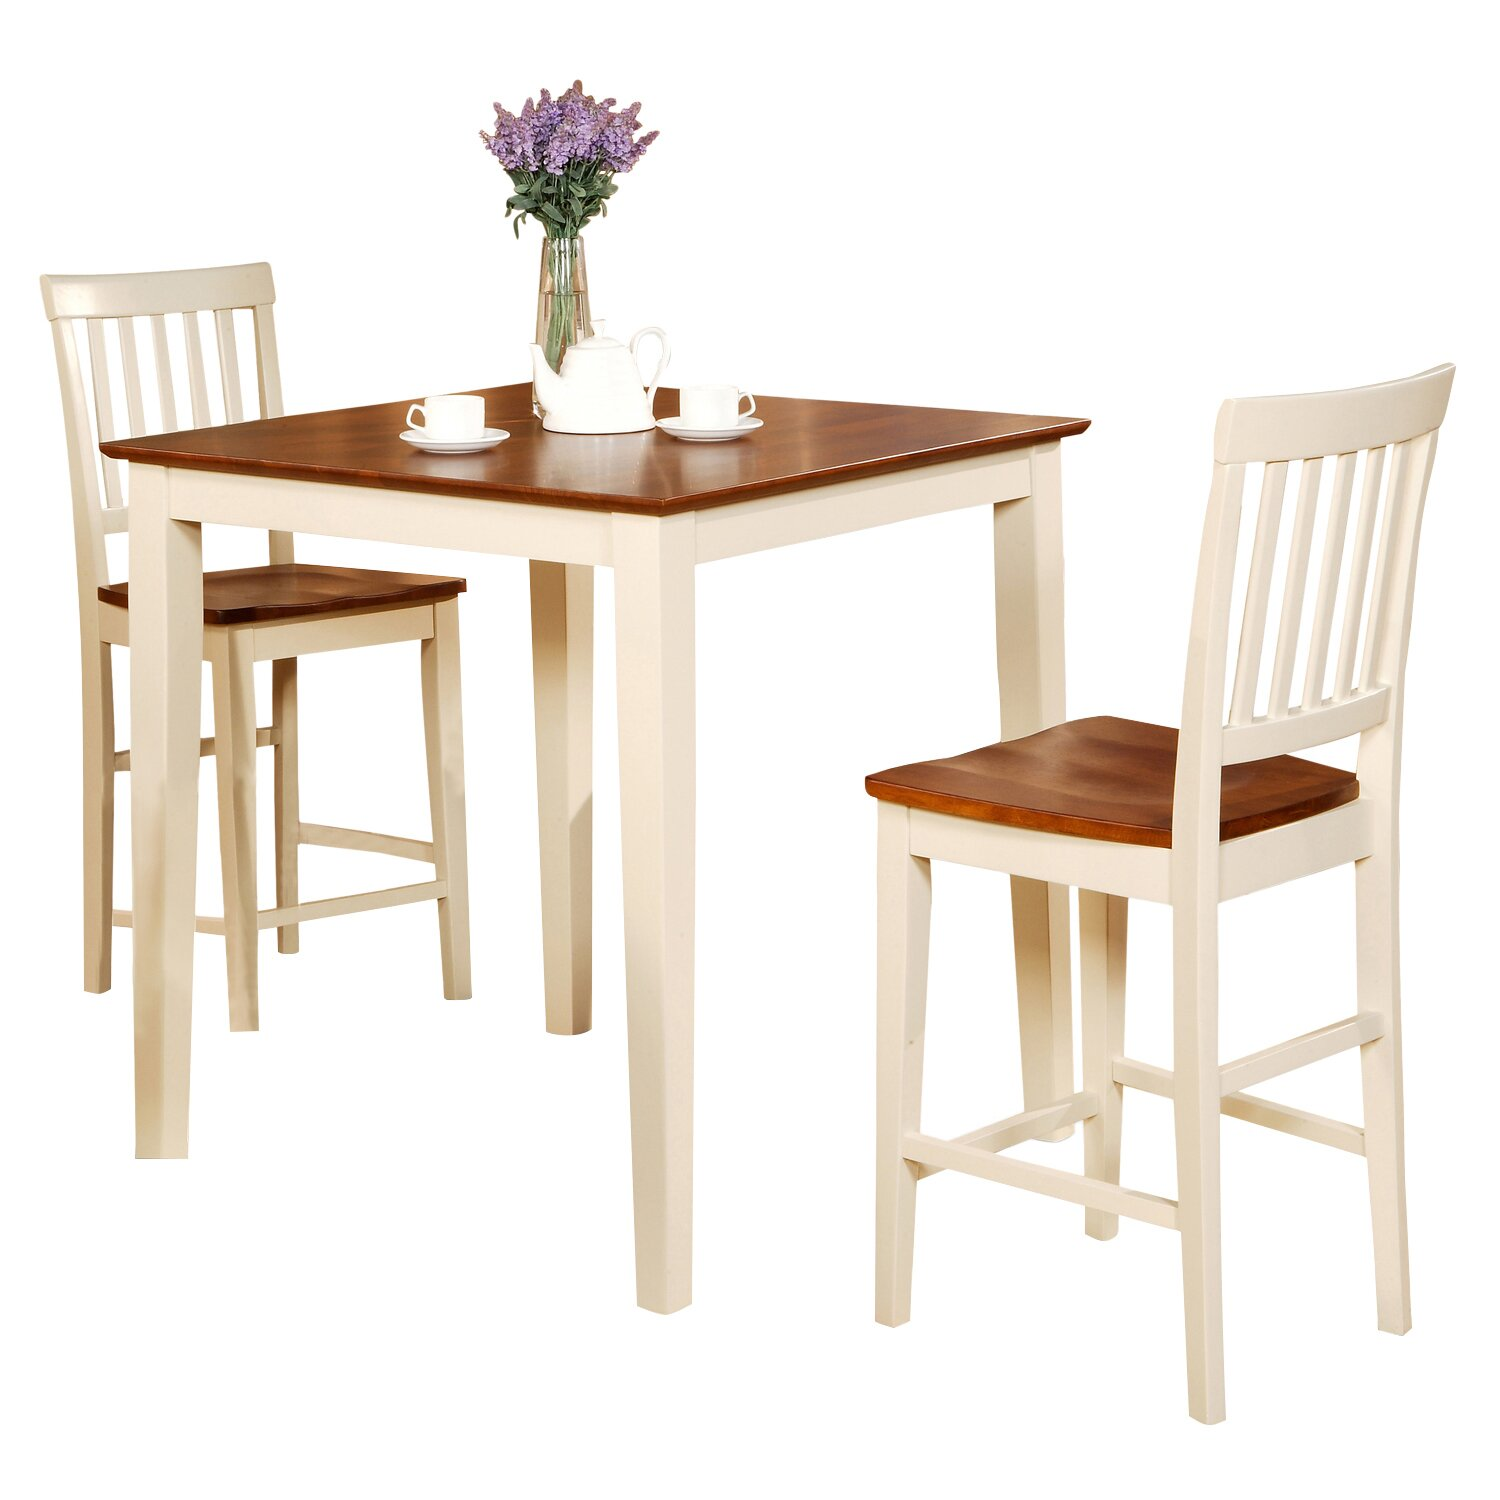 Counter Height Bistro Table Set Alcott Hill Stockport 3 Piece Counter Height Bistro Set Reviews